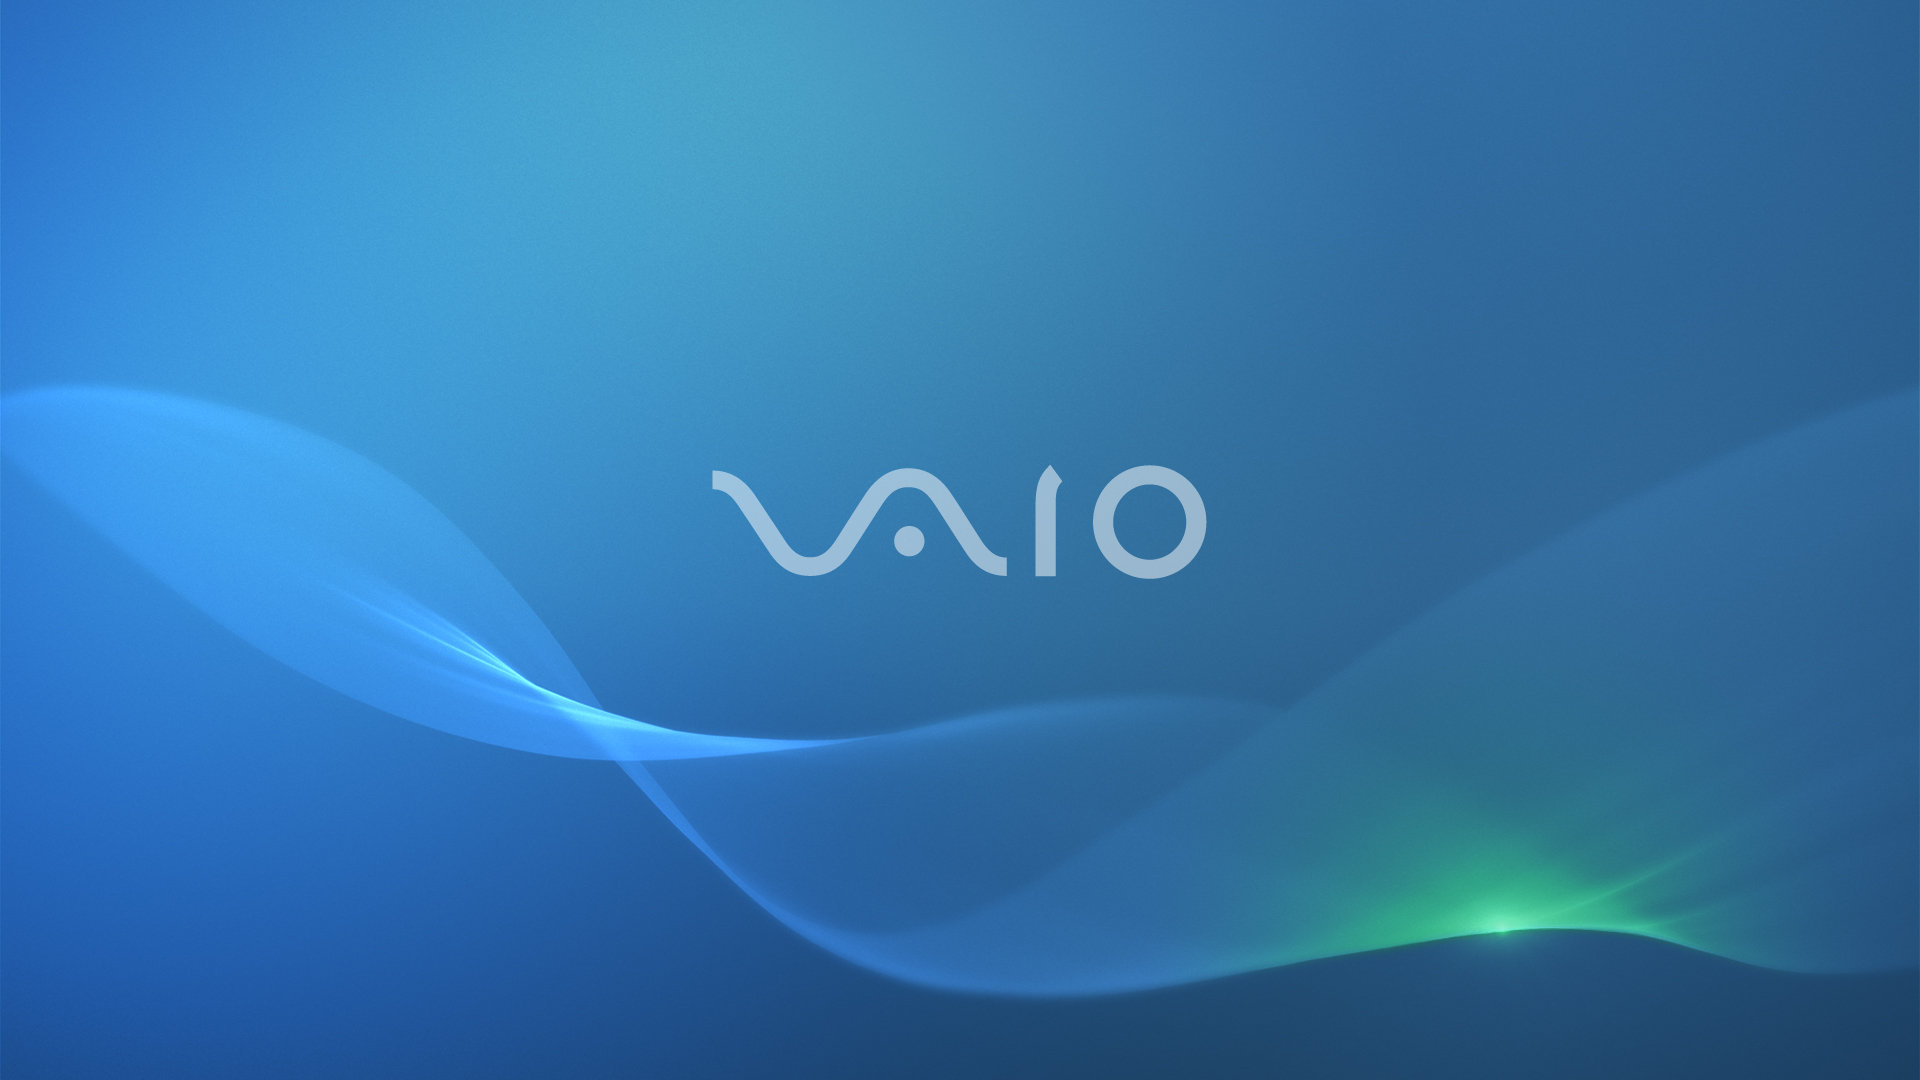 HQ Vaio Wallpapers | File 661.99Kb